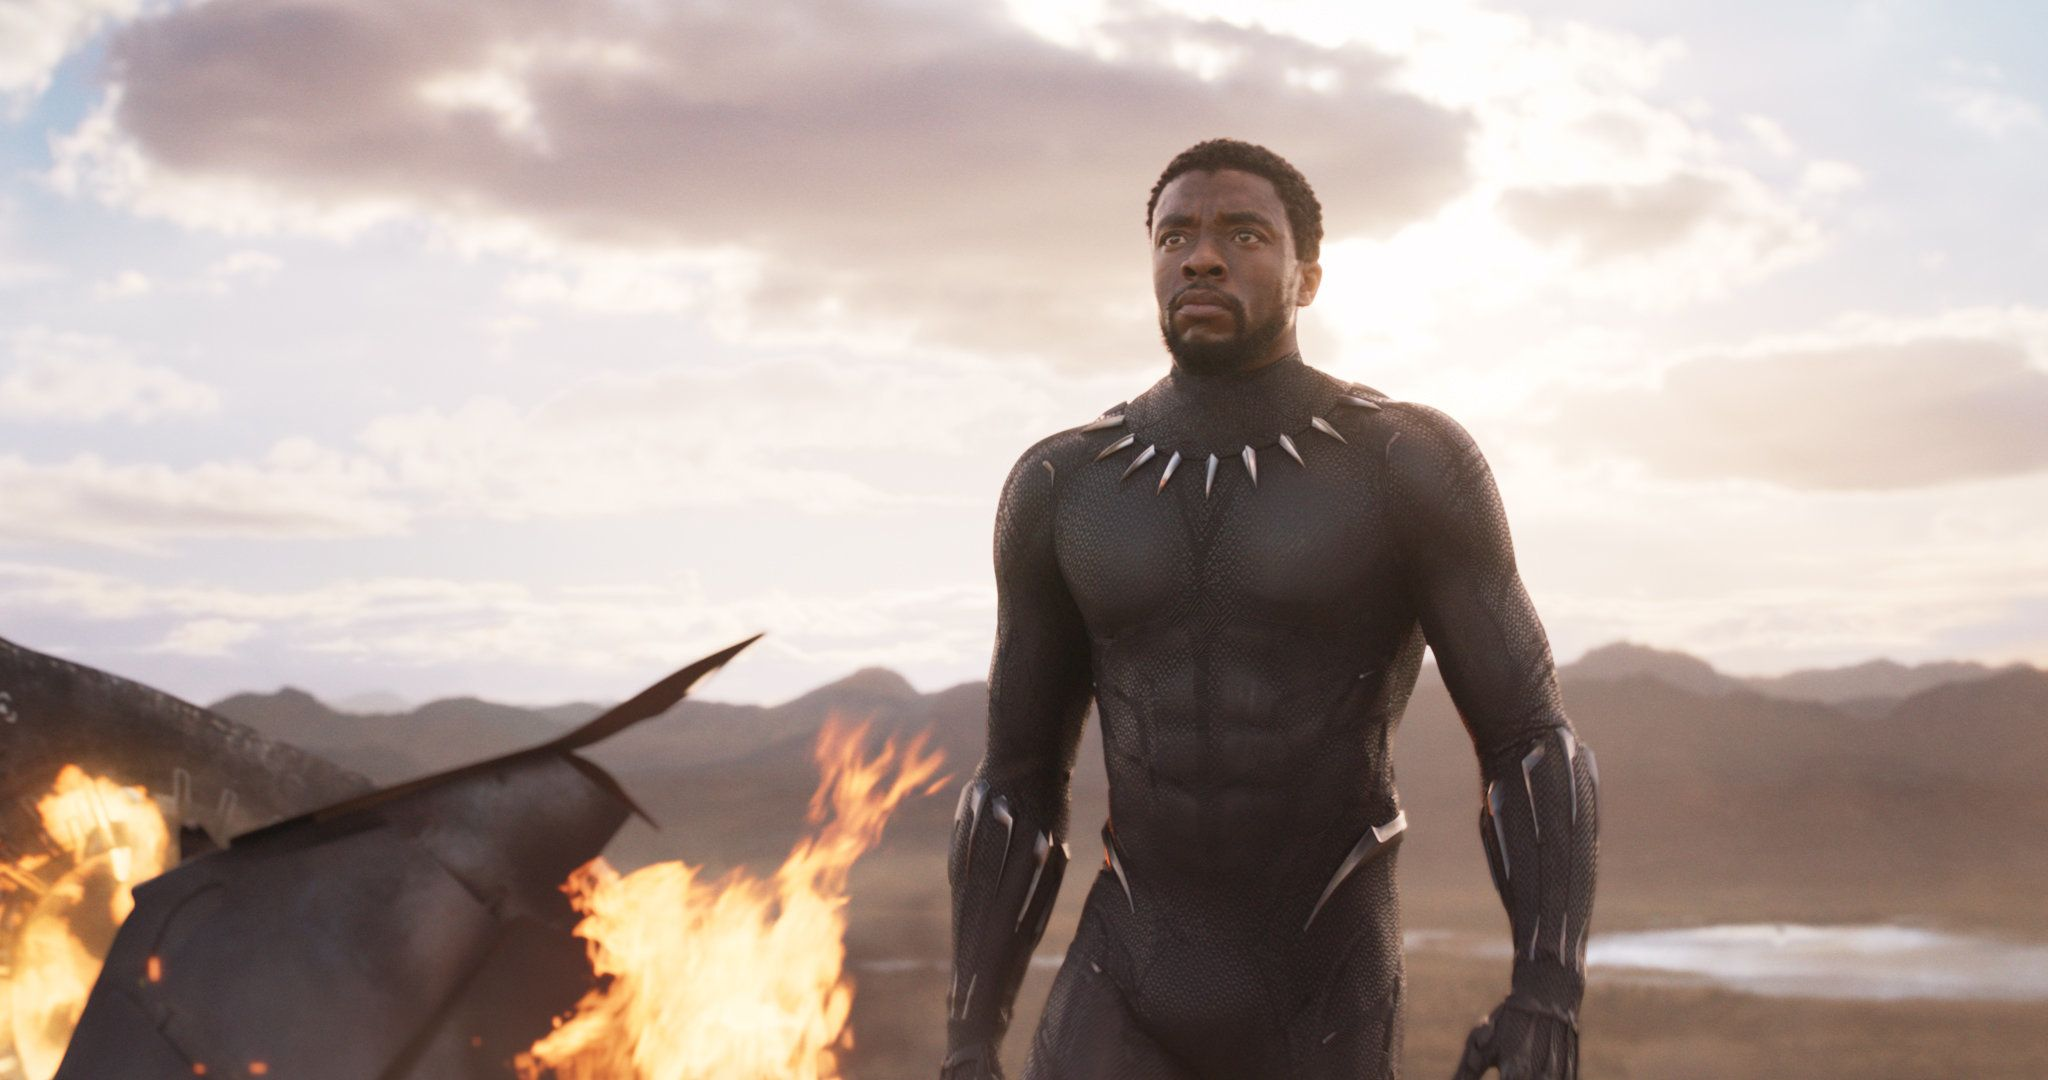 Ryan Coogler on why Black Panther is Marvel's most political film